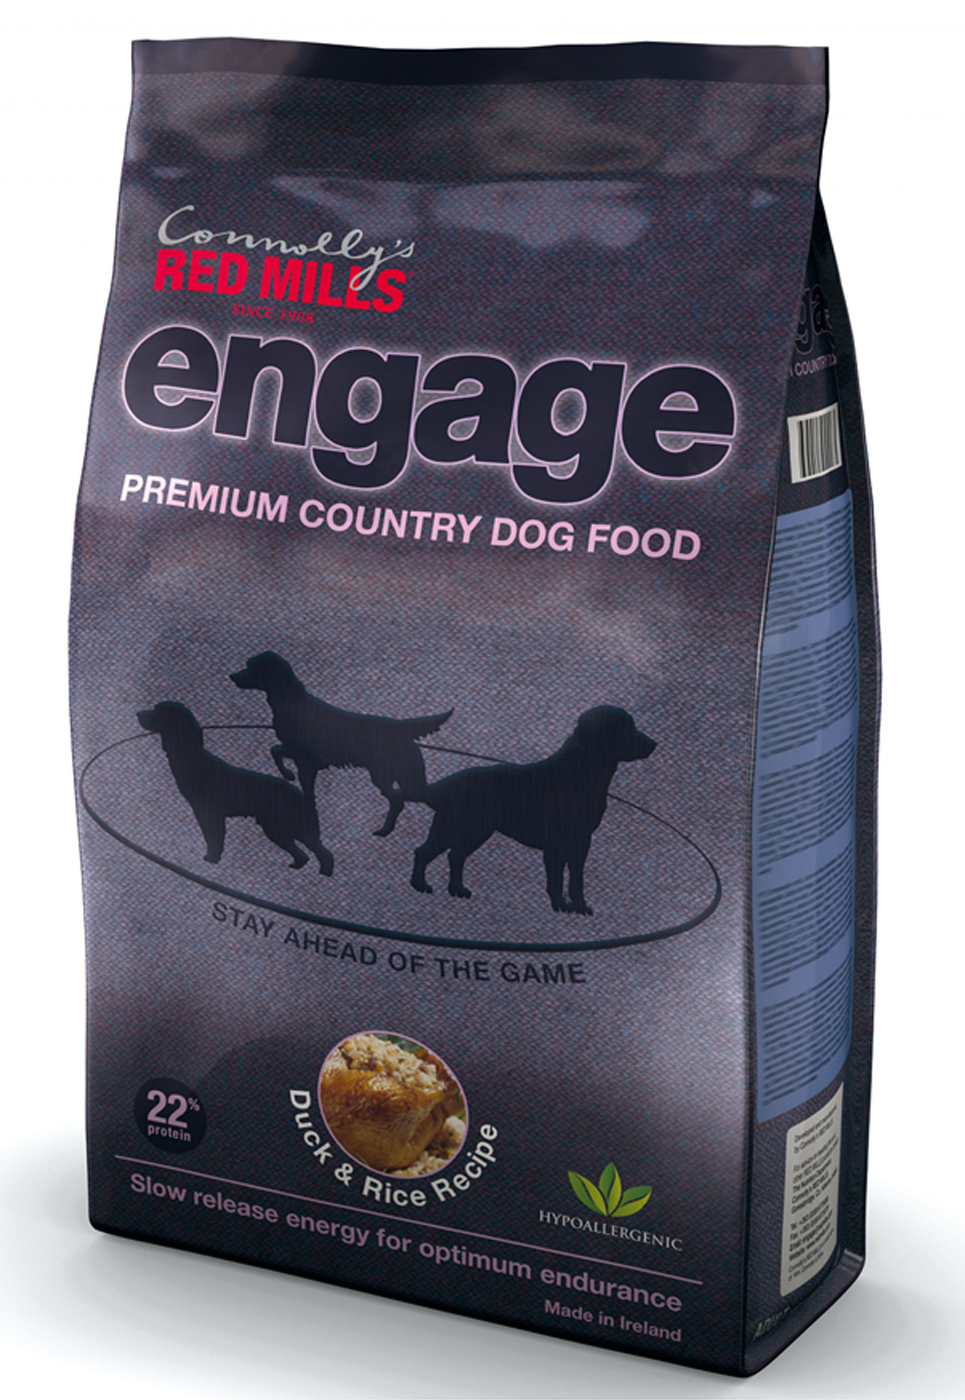 Connolly's Red Mills Engage Duck & Rice Dog Food